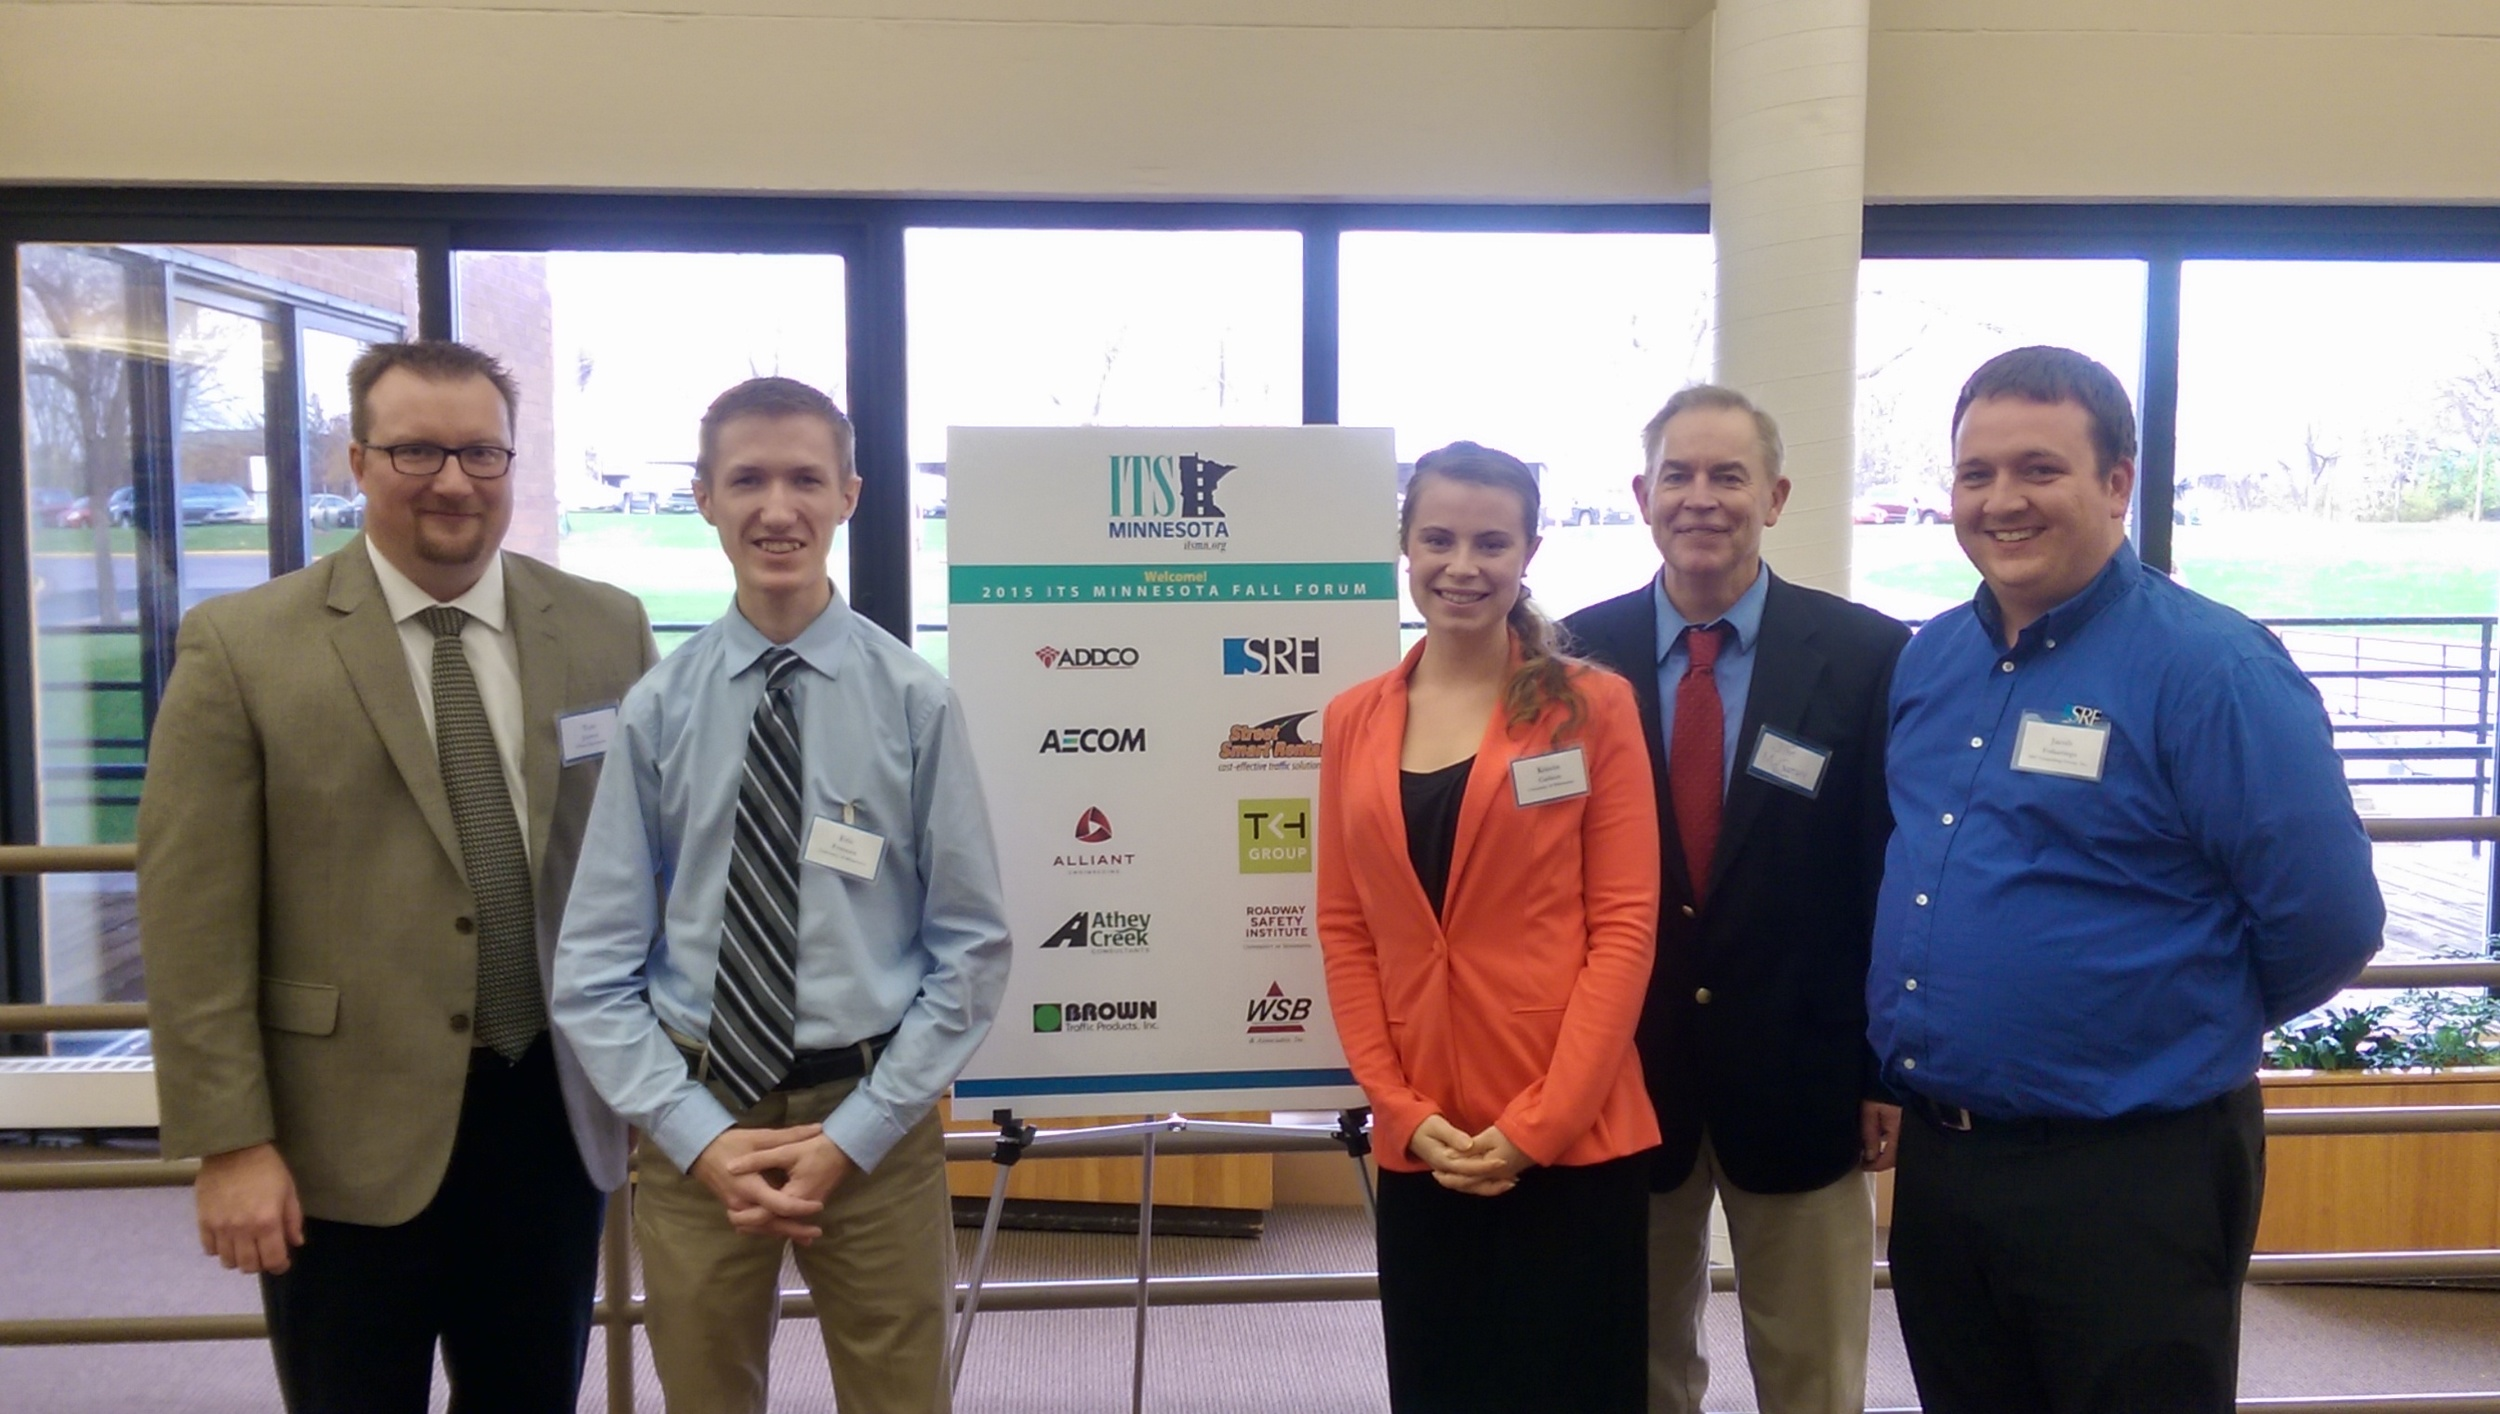 From L to R: 2015 ITS MN President Tom Jensen, Undergraduate Award winners Eric Francen and Kristin Carlson, Scholarship Committee Members Jim McCarthy and Jake Folkeringa.